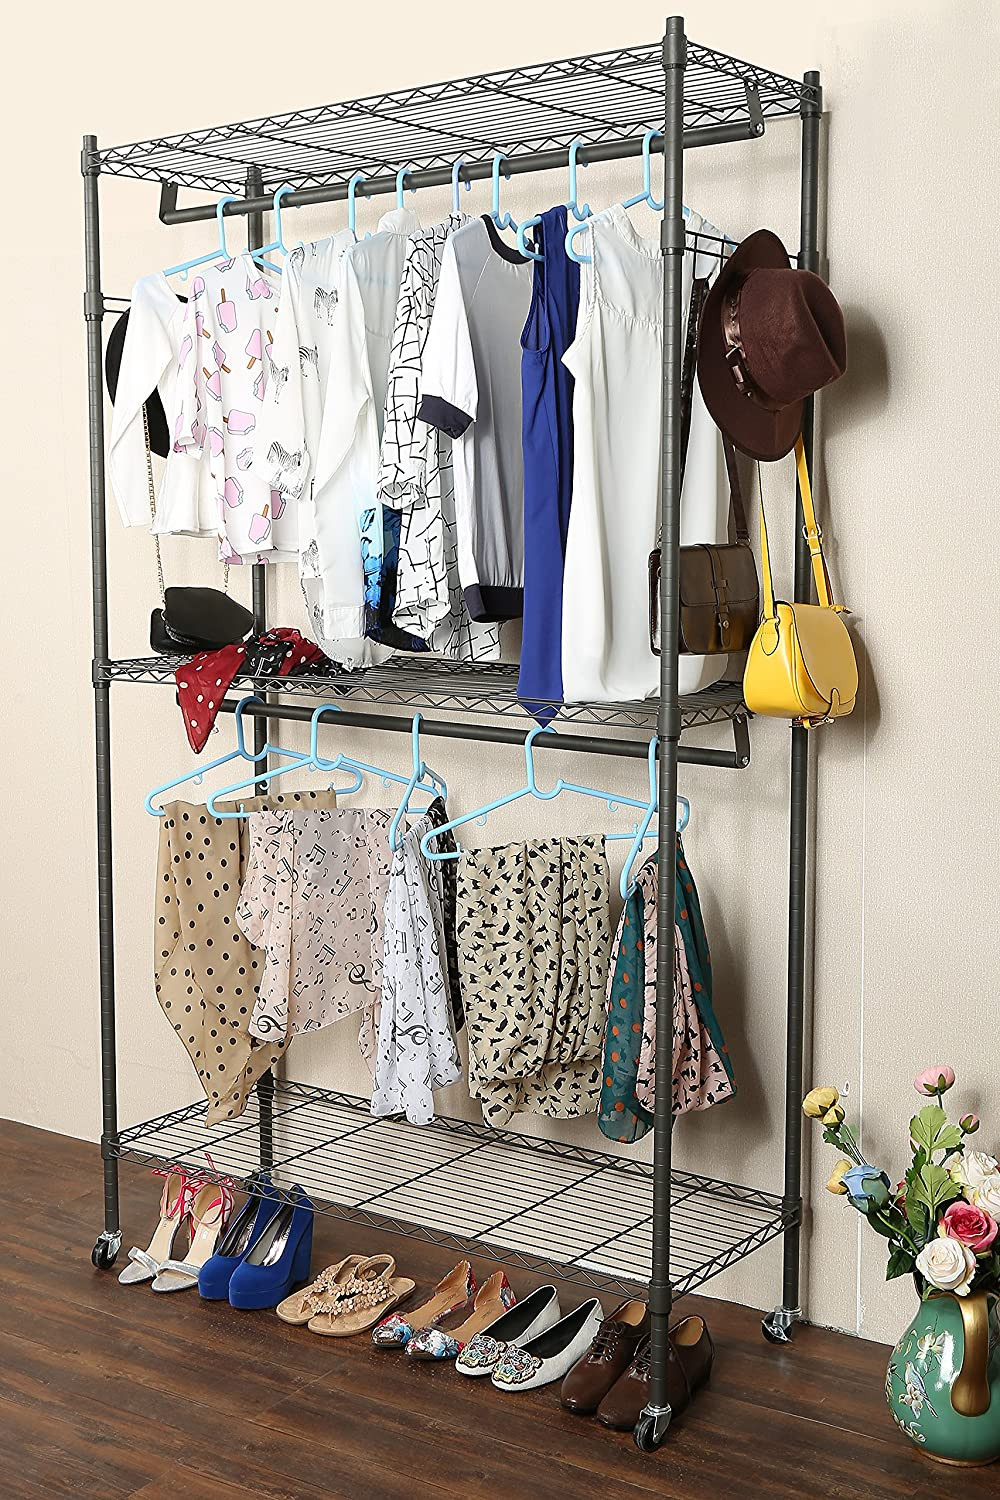 Homdox 3 Shelves Wire Shelving Clothing Rolling Rack Heavy Duty Commercial Grade Garment Rack